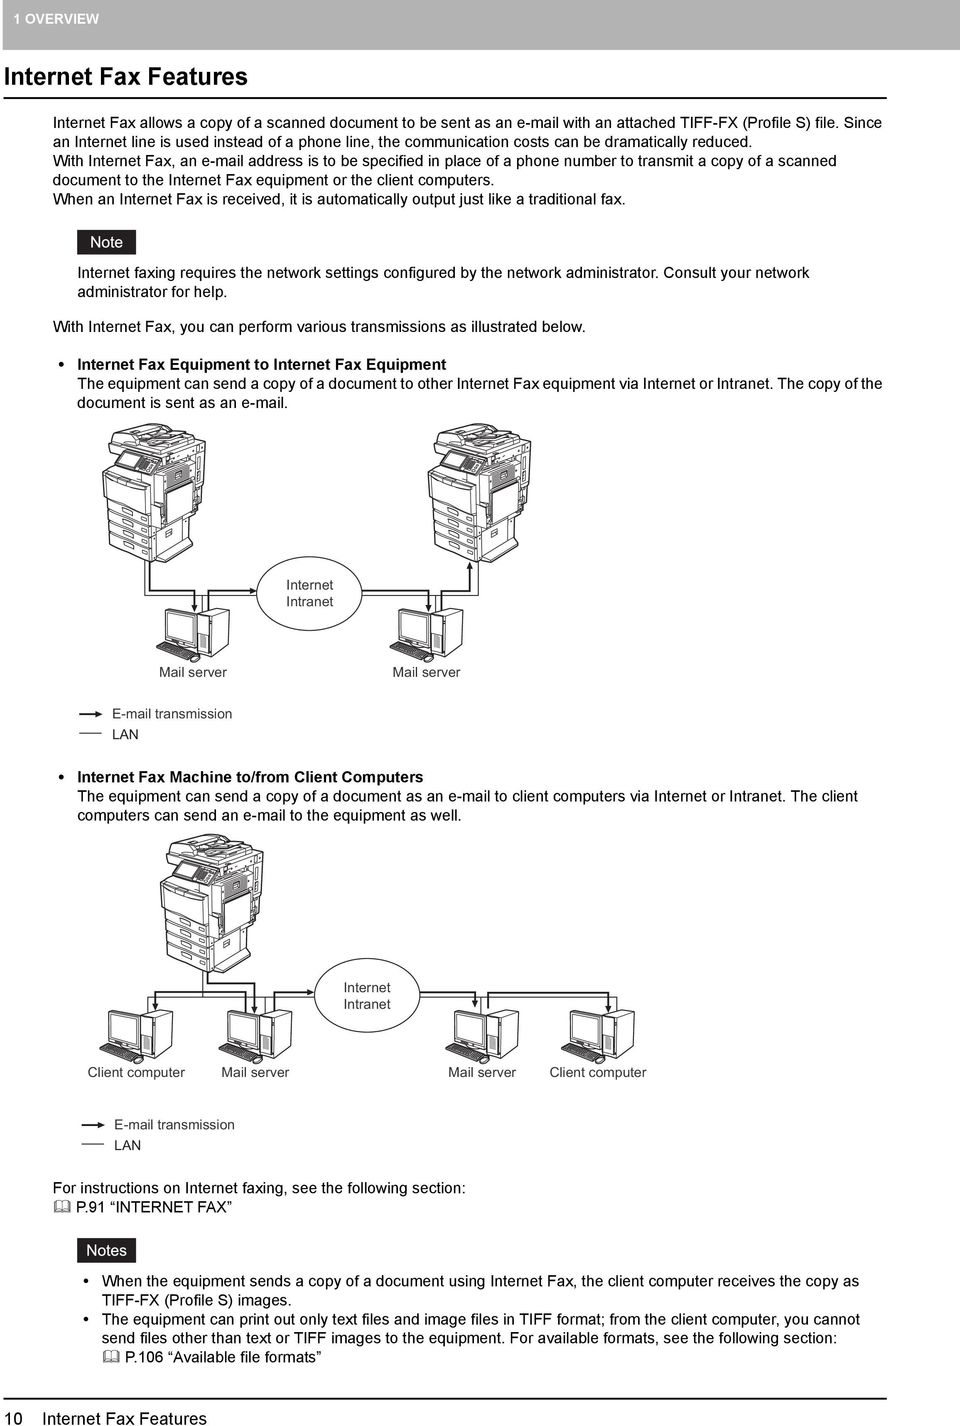 With Internet Fax, an e-mail address is to be specified in place of a phone number to transmit a copy of a scanned document to the Internet Fax equipment or the client computers.